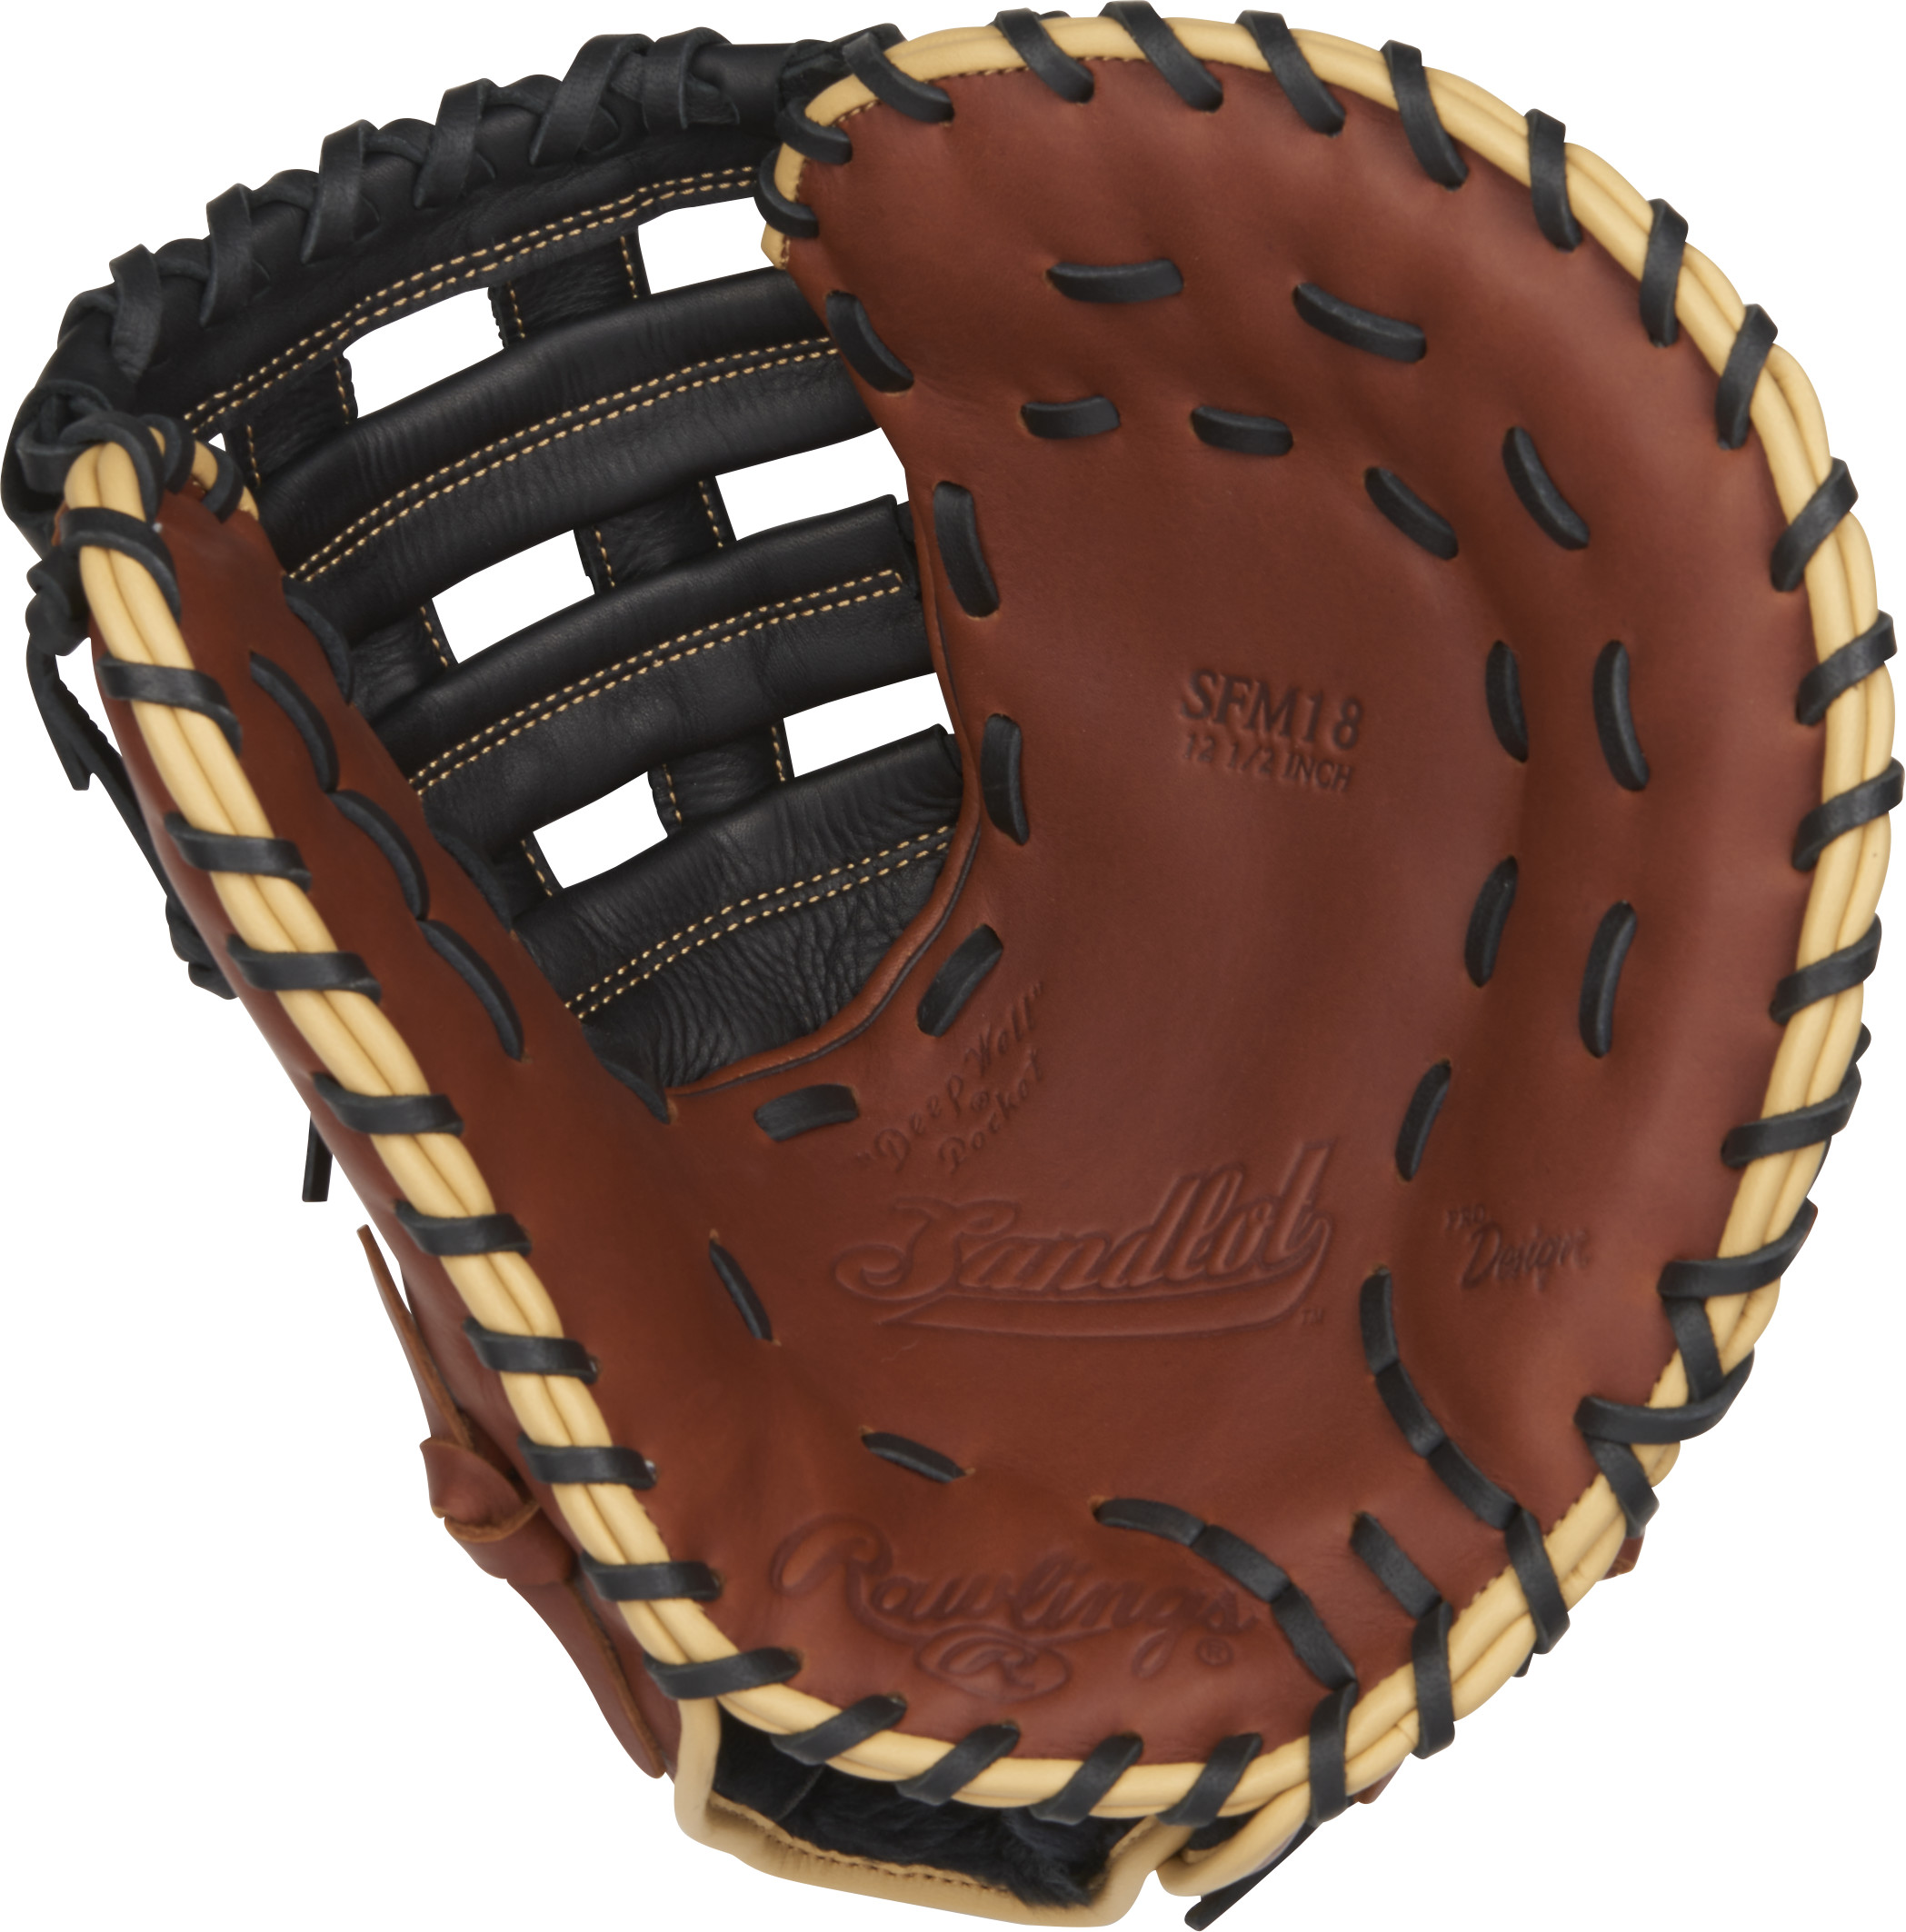 http://www.bestbatdeals.com/images/gloves/rawlings/SFM18-1.jpg